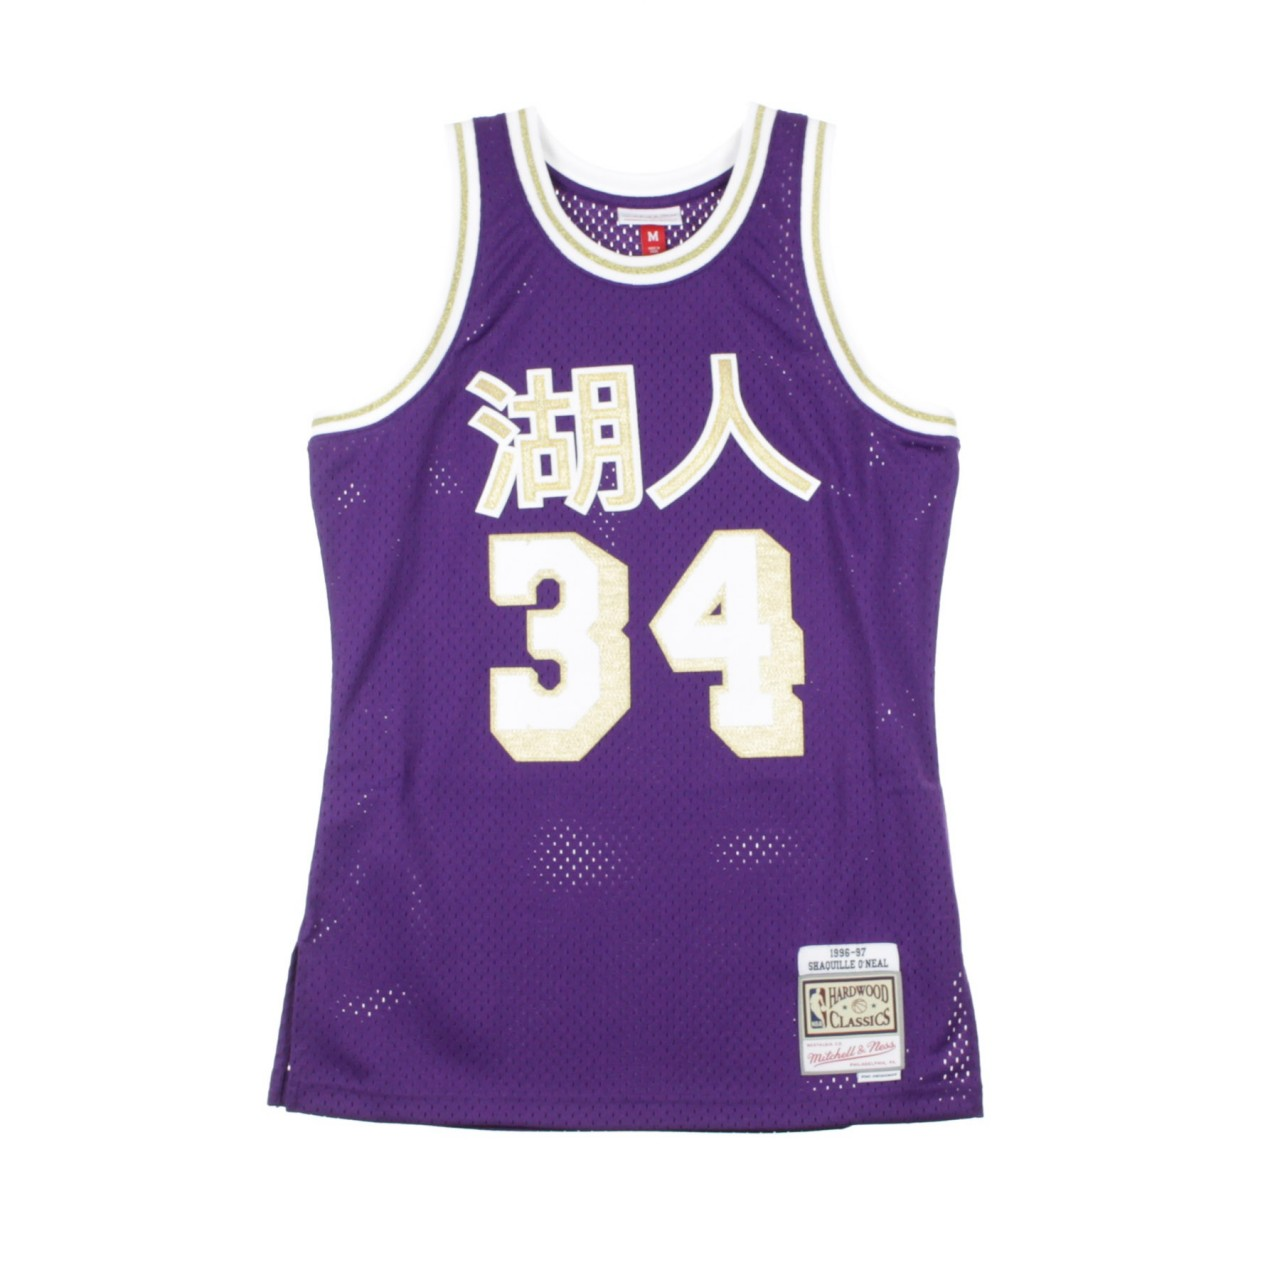 MITCHELL & NESS NBA CHINESE NEW YEAR EDITION SWINGMAN JERSEY SHAQUILLE O'NEAL NO.34 1996-97 LOSLAK ROAD SMJYNG18409-LALPURP96SON